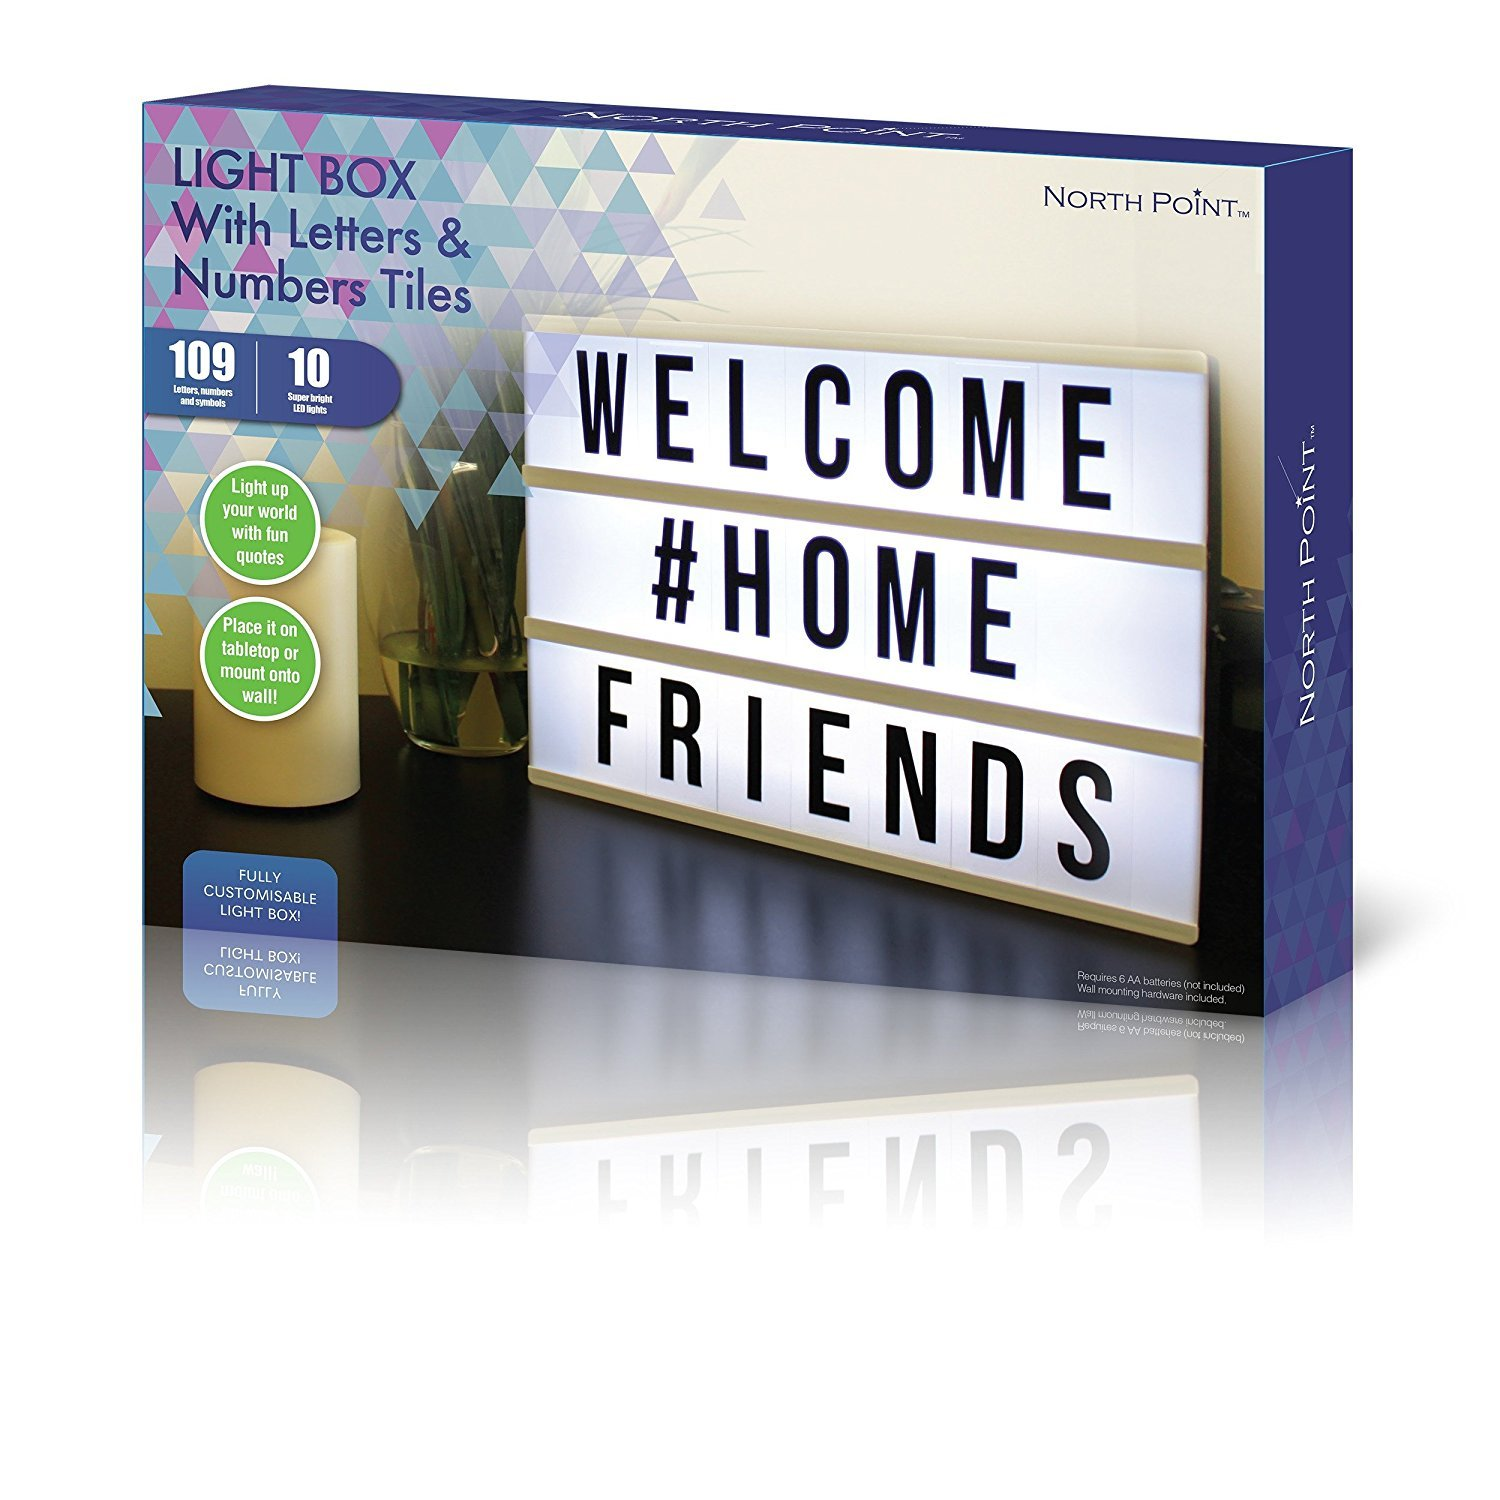 Northpoint GM8282 Lightbox with 109 Letters, Numbers and Symbols, ONE Size, White by Northpoint